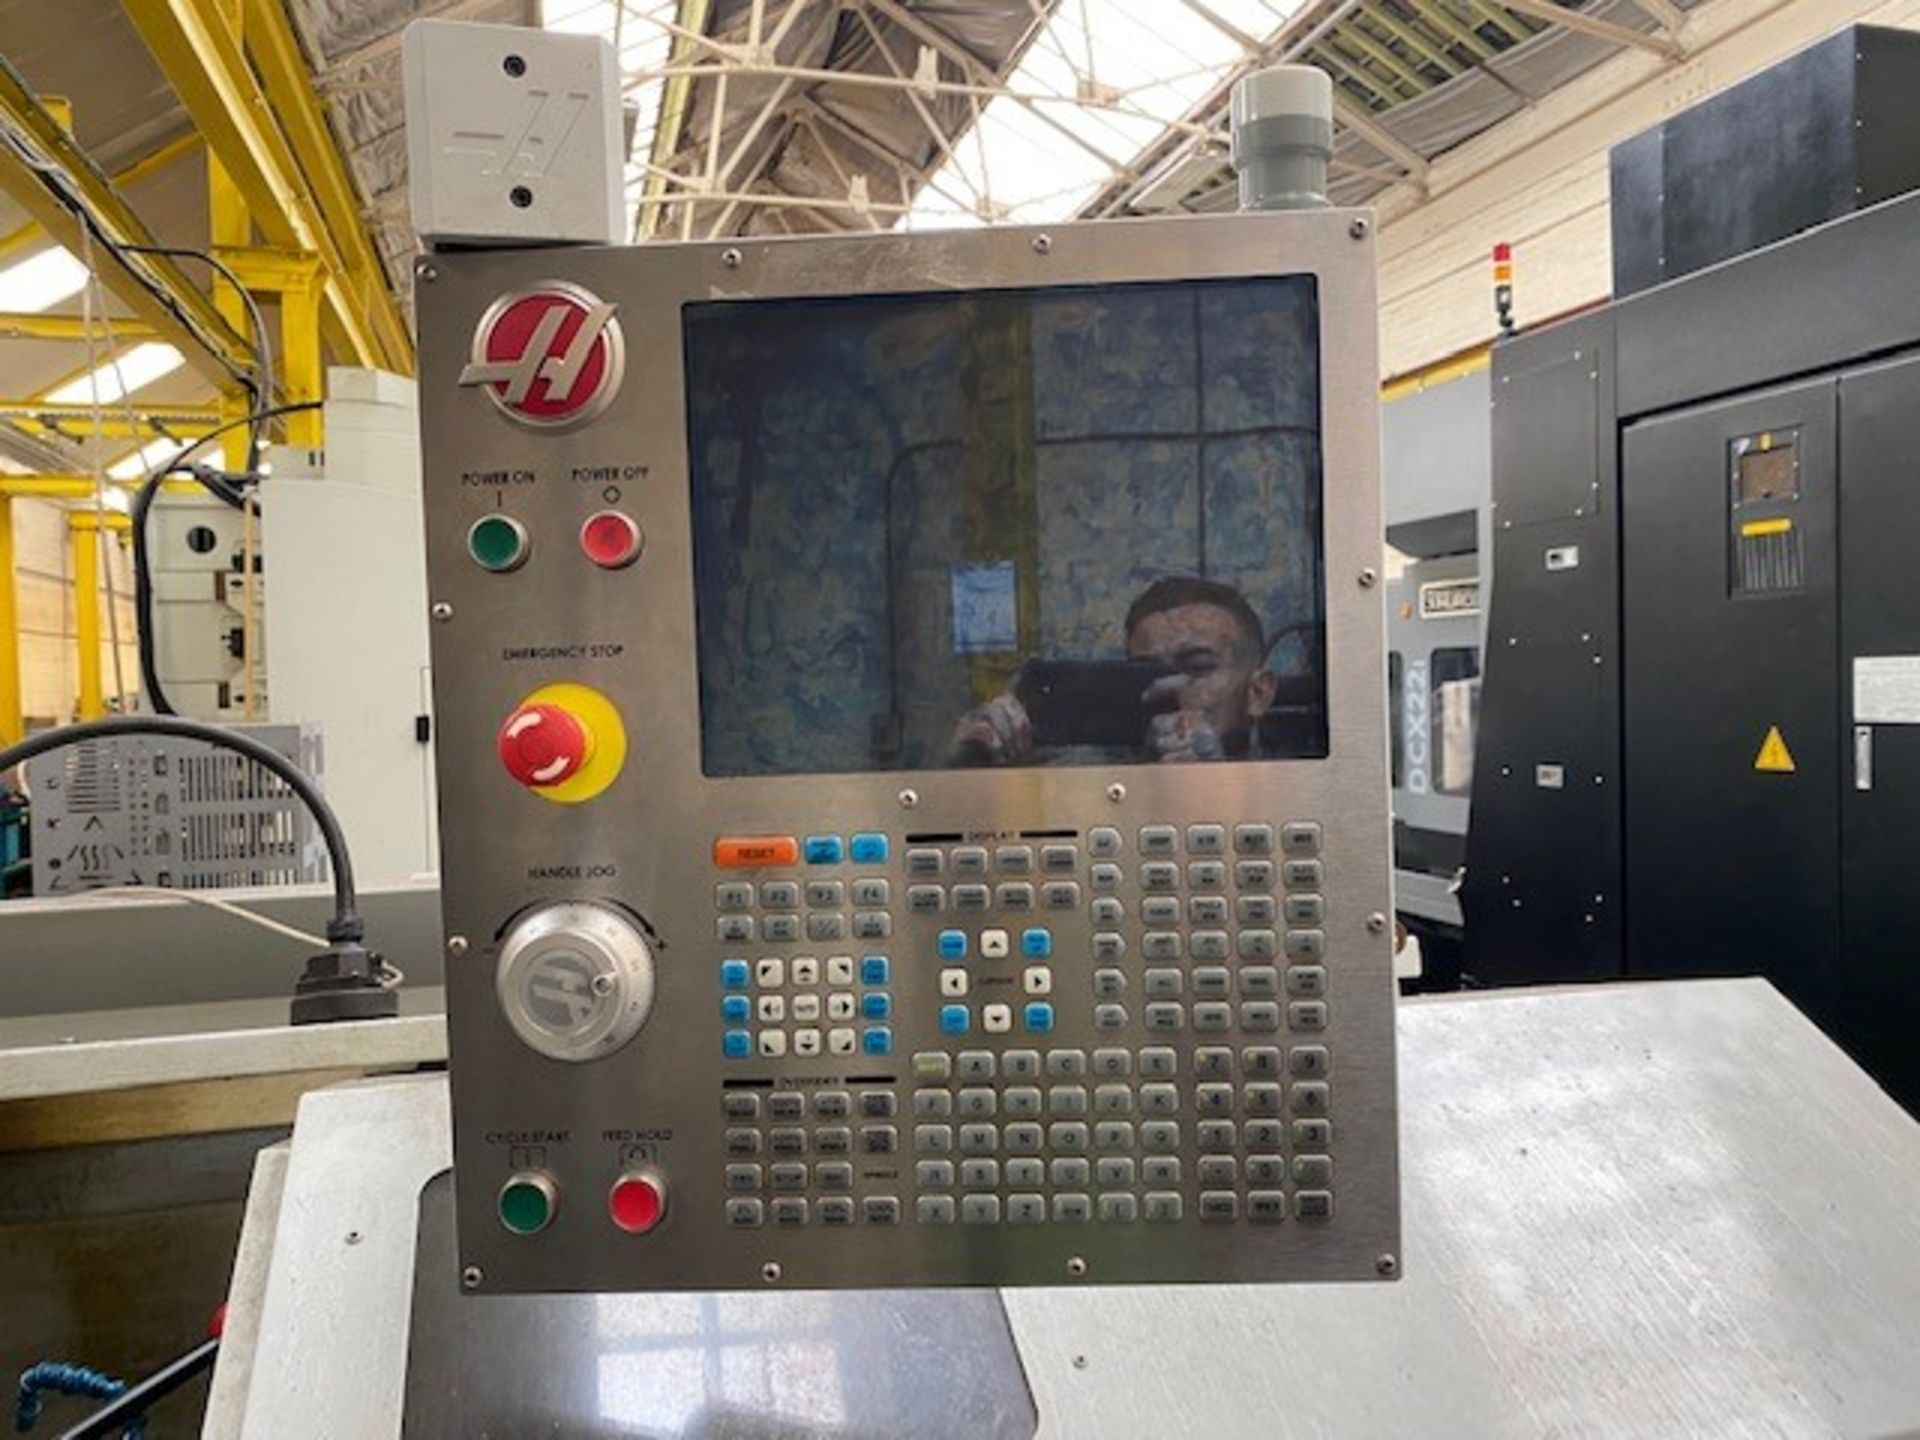 HASS ENCLOSED 2-AXIS CNC TOOLROOM LATHE WITH HASS CONTROLLER MODEL: TL-2 SERIAL NO: 3089388 DMF: - Image 5 of 5